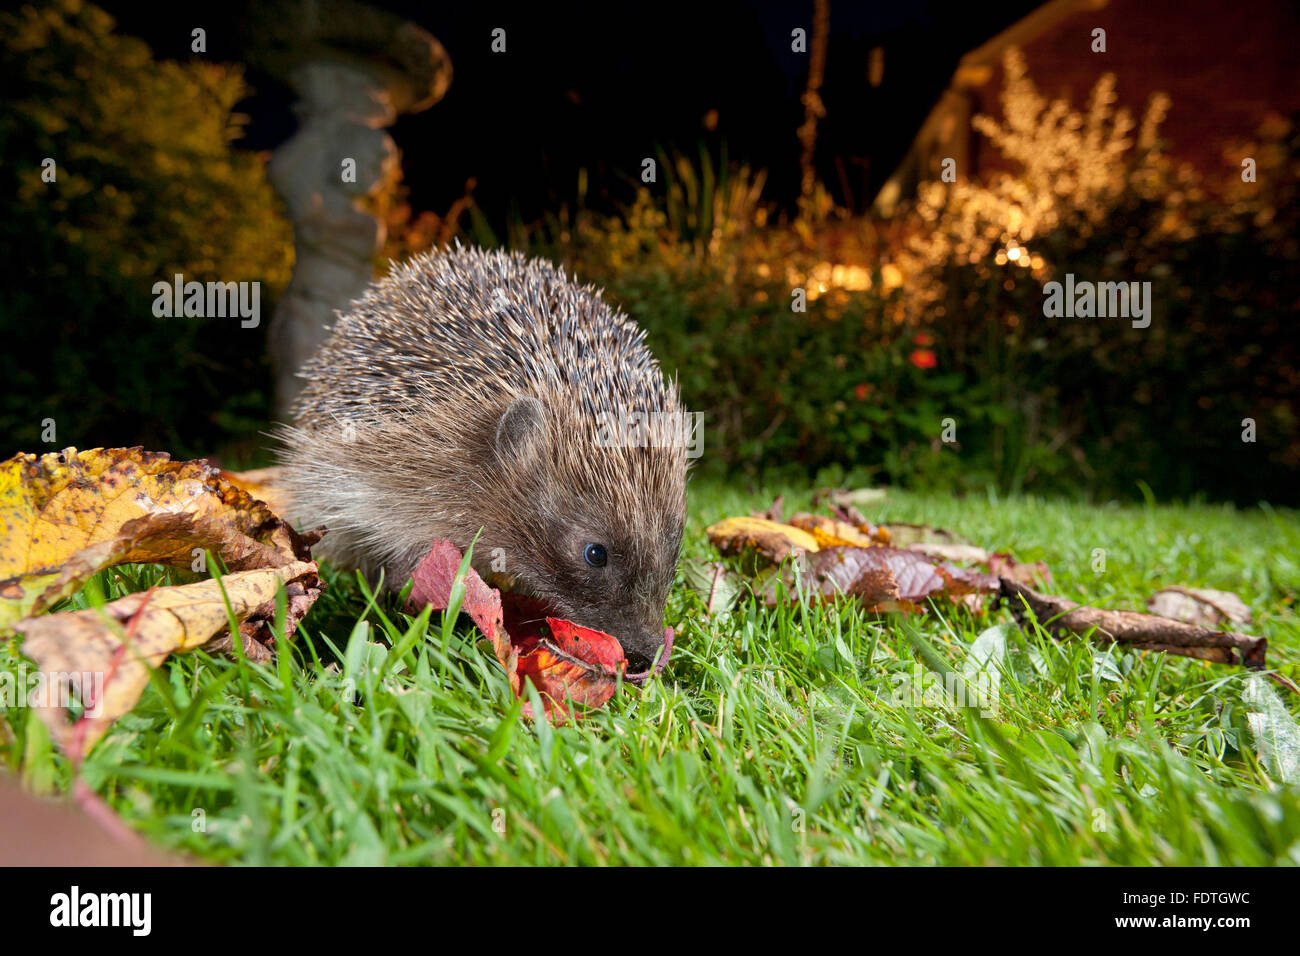 European Hedgehog (Erinaceus europaeus) wild adult, feeding on a garden lawn at night. Powys, Wales. September. - Stock Image